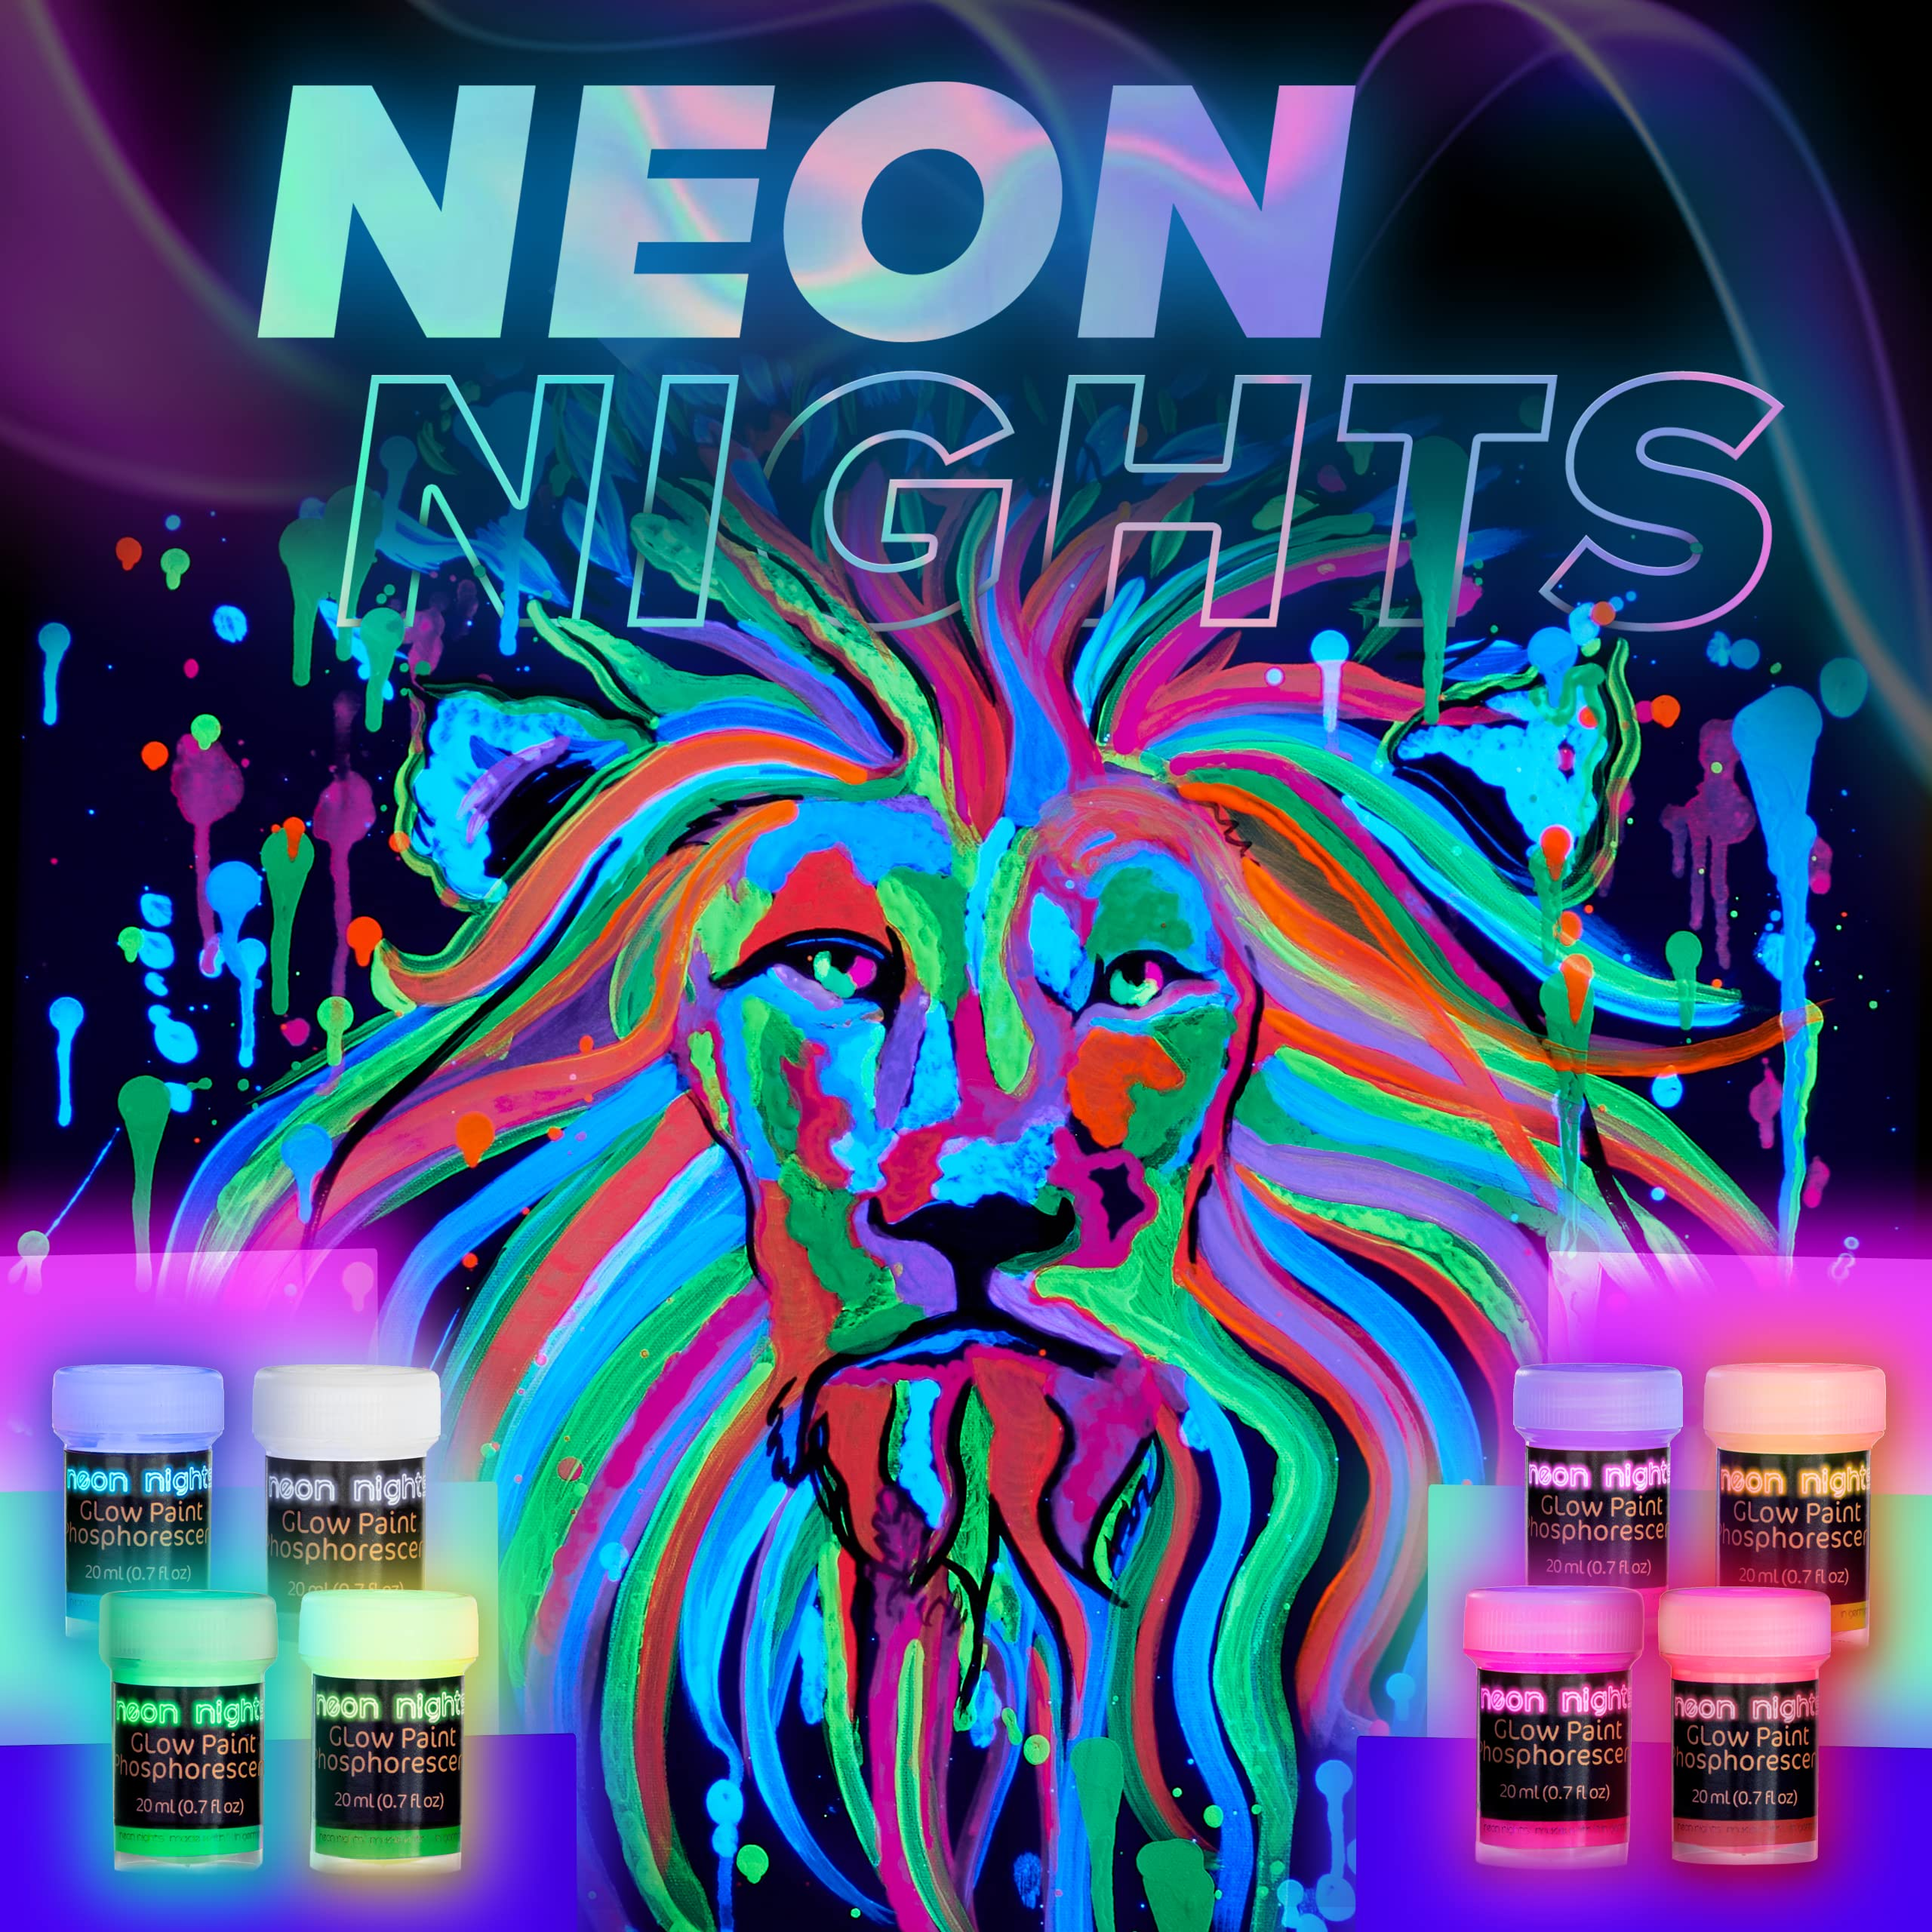 Neon Nights Glow in the Dark Paint - Set of 8, 20 mL Acrylic Paints for Outdoor and Indoor Use on Canvas, Walls and for Pumpkin Paint - Phosphorescent